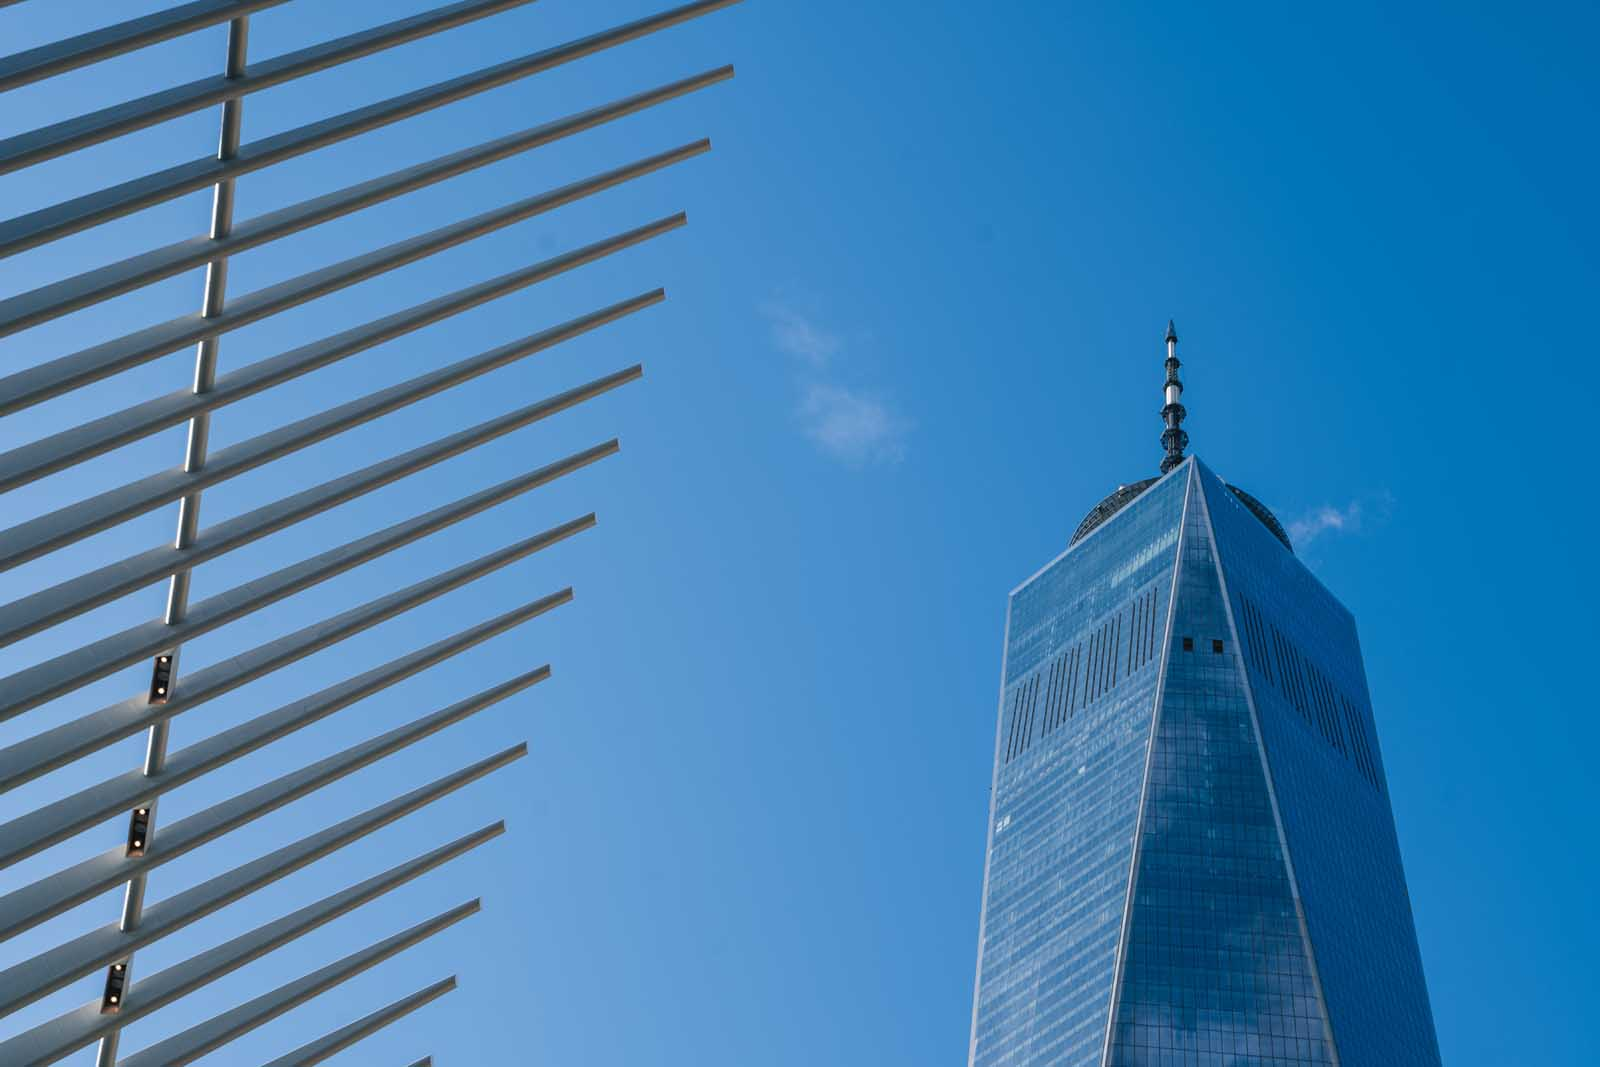 World Trade Center in New York City